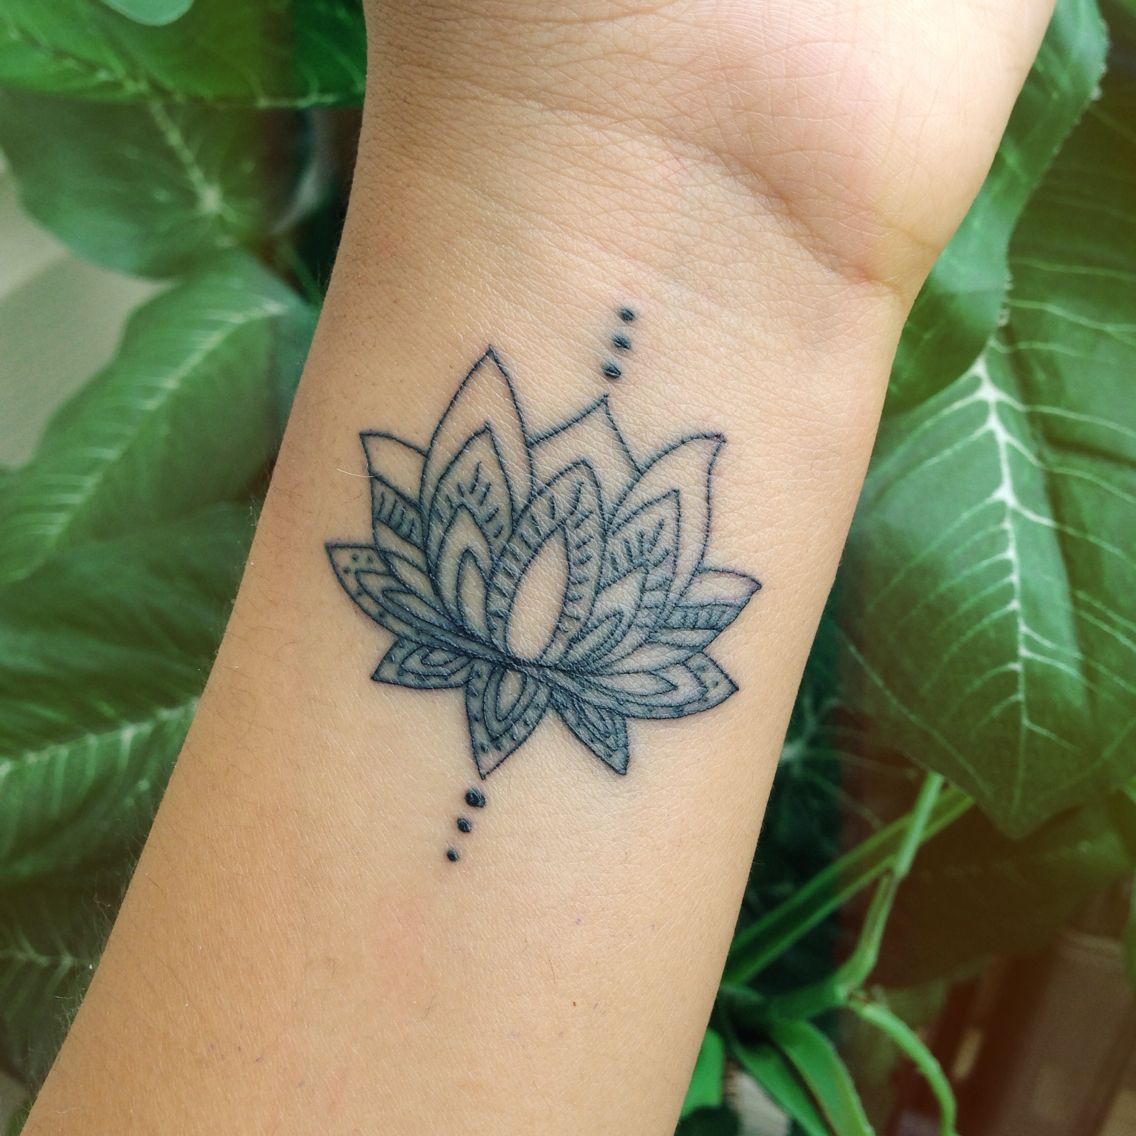 40 Awesome Wrist Tattoo Ideas For Inspiration Ink Pinterest